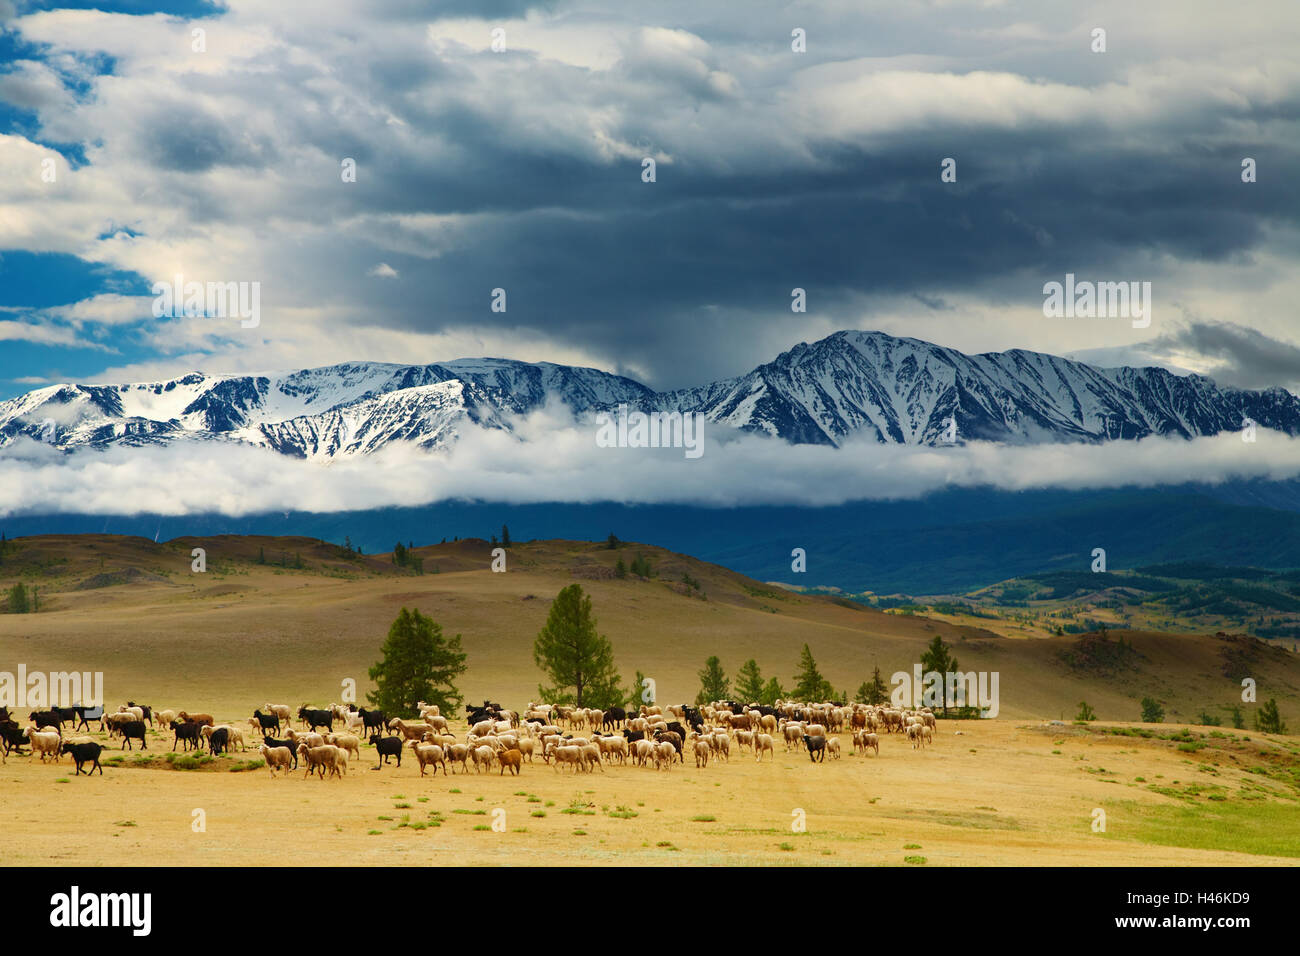 Landscape with grazing sheep and snowy mountains - Stock Image